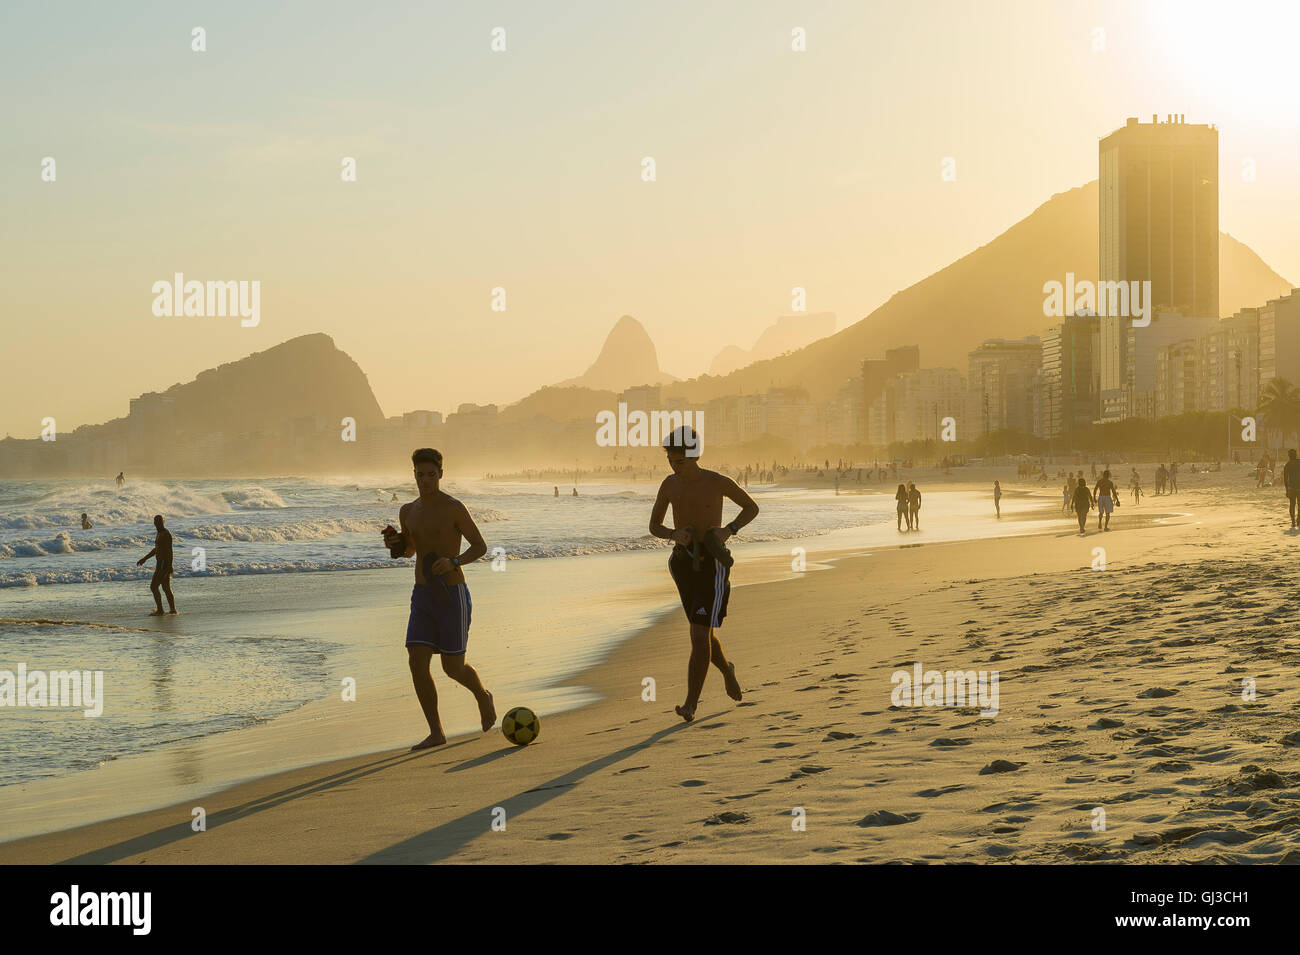 RIO DE JANEIRO - OCTOBER 30, 2015: Young carioca Brazilian men run kicking a football soccer ball along Copacabana - Stock Image